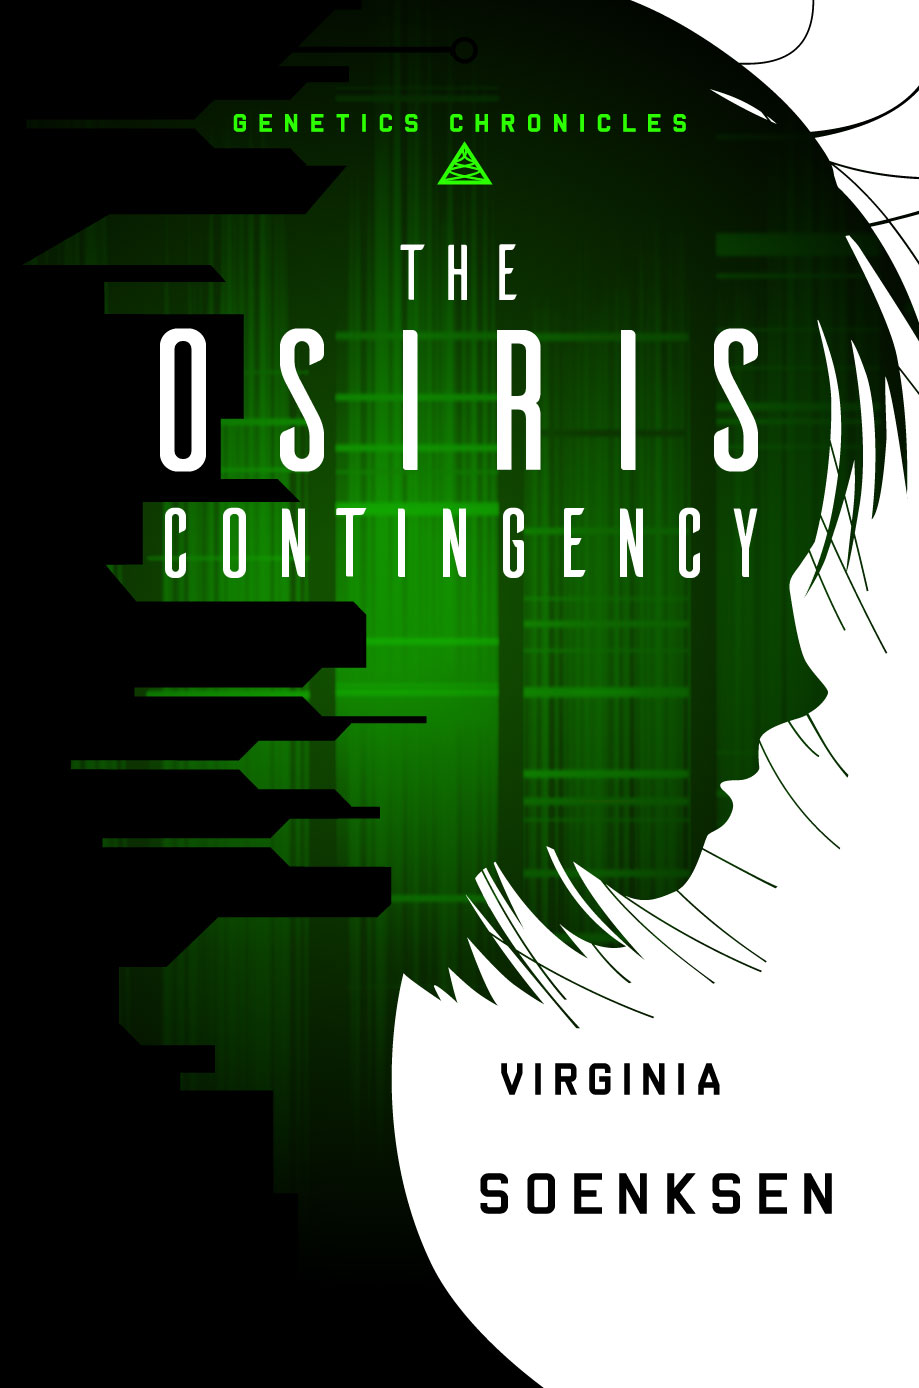 The Osiris Contingency (Book 2) - Within London of the future, there are no limits to genetic engineering, and a war is brewing between altered humans, known as mods, and the genetically modified assassins of the sinister Agency.Liane, an Agent gone rogue and on the run from her former masters, barely survived the last attack by the Agency. Still grappling with the truths she learned about the Titan Strain, Liane vows to destroy those who turned her into an inhuman killer. But that means outsmarting and outrunning her former Handler, who wants his Agent back at any cost.With the Osiris Contingency threatening ruin for them all, Liane will find herself faced with an impossible choice between freedom and survival.